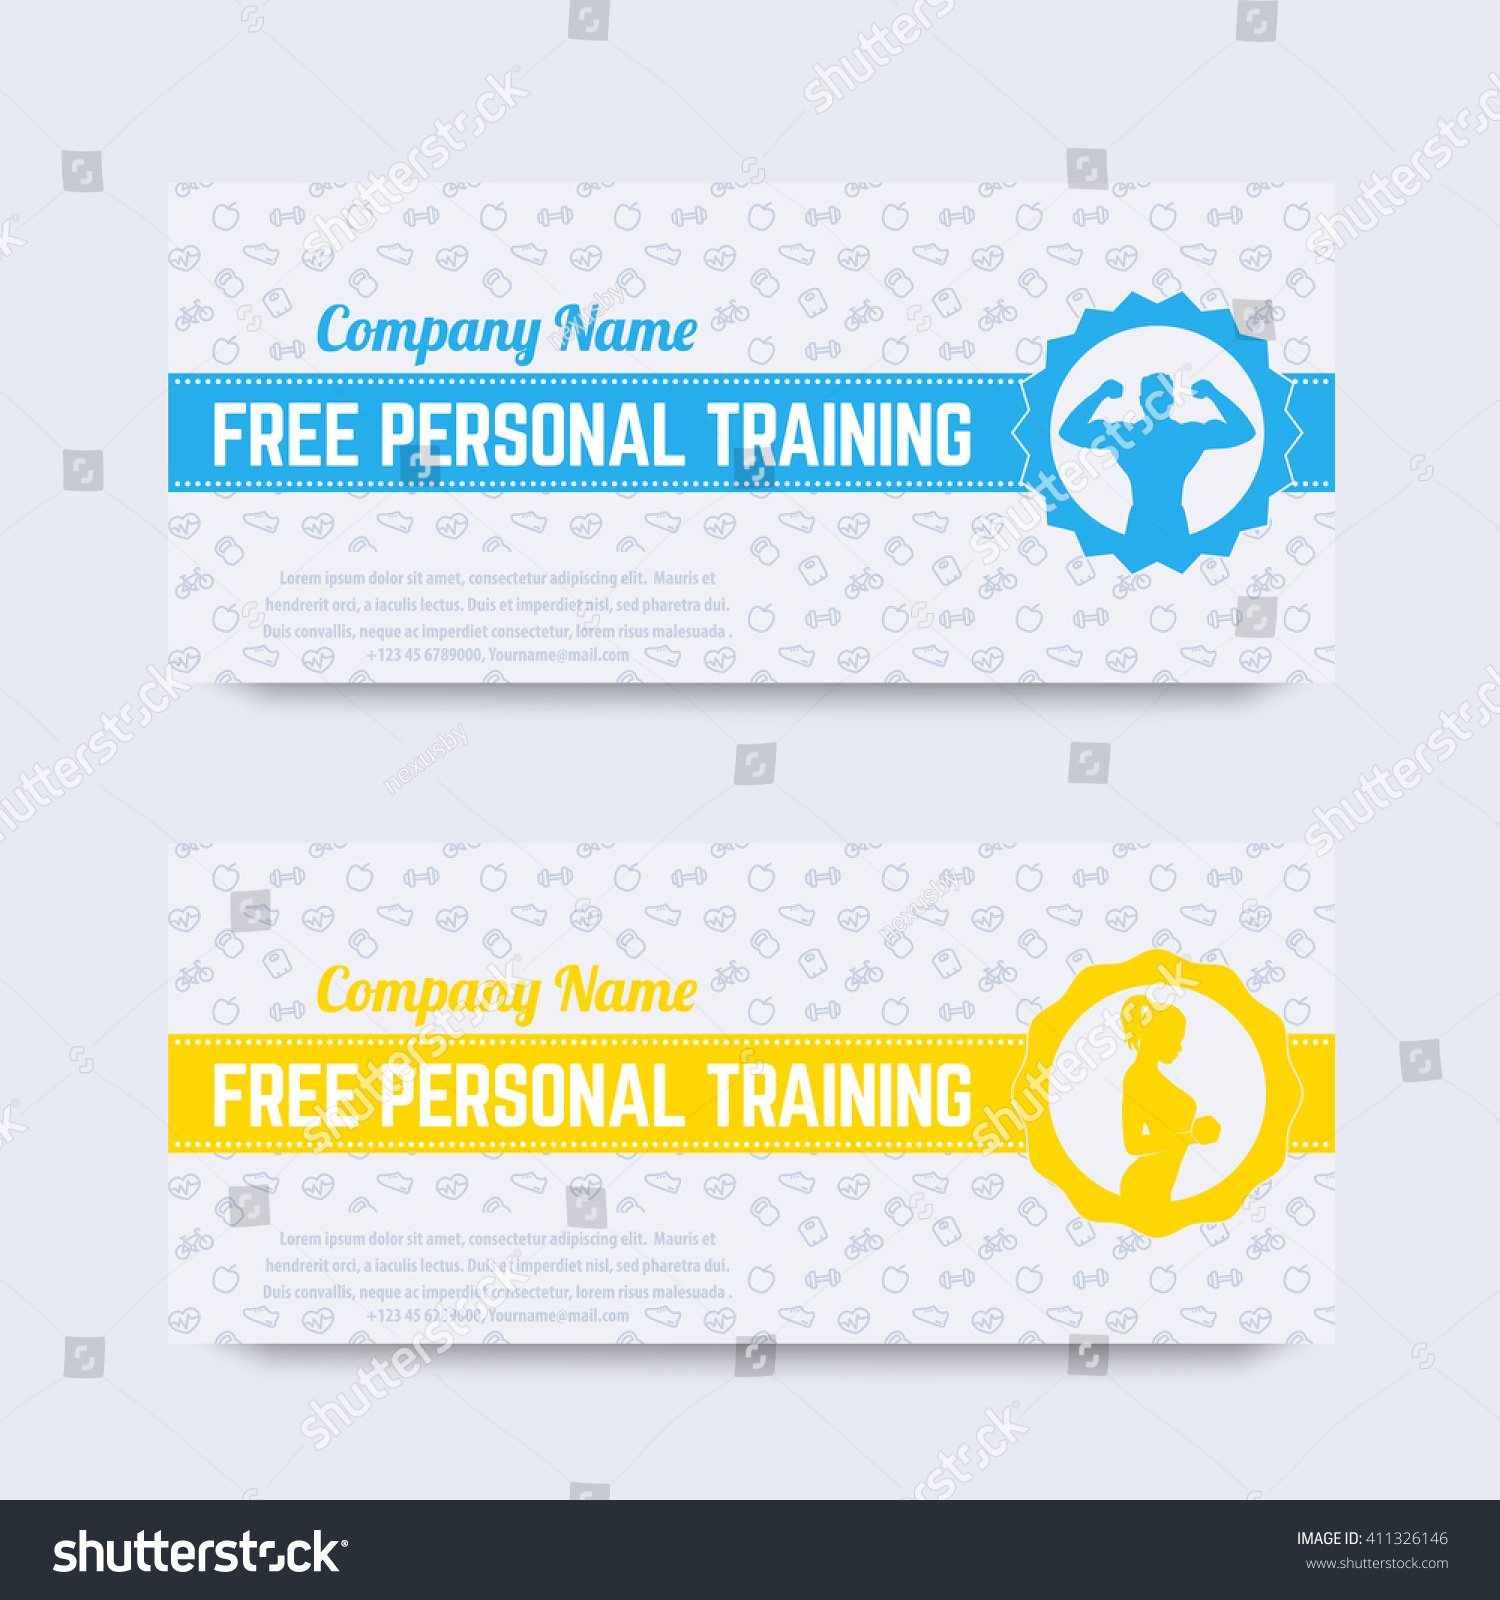 Free Personal Training Gift Voucher Design Stock Vector Royalty